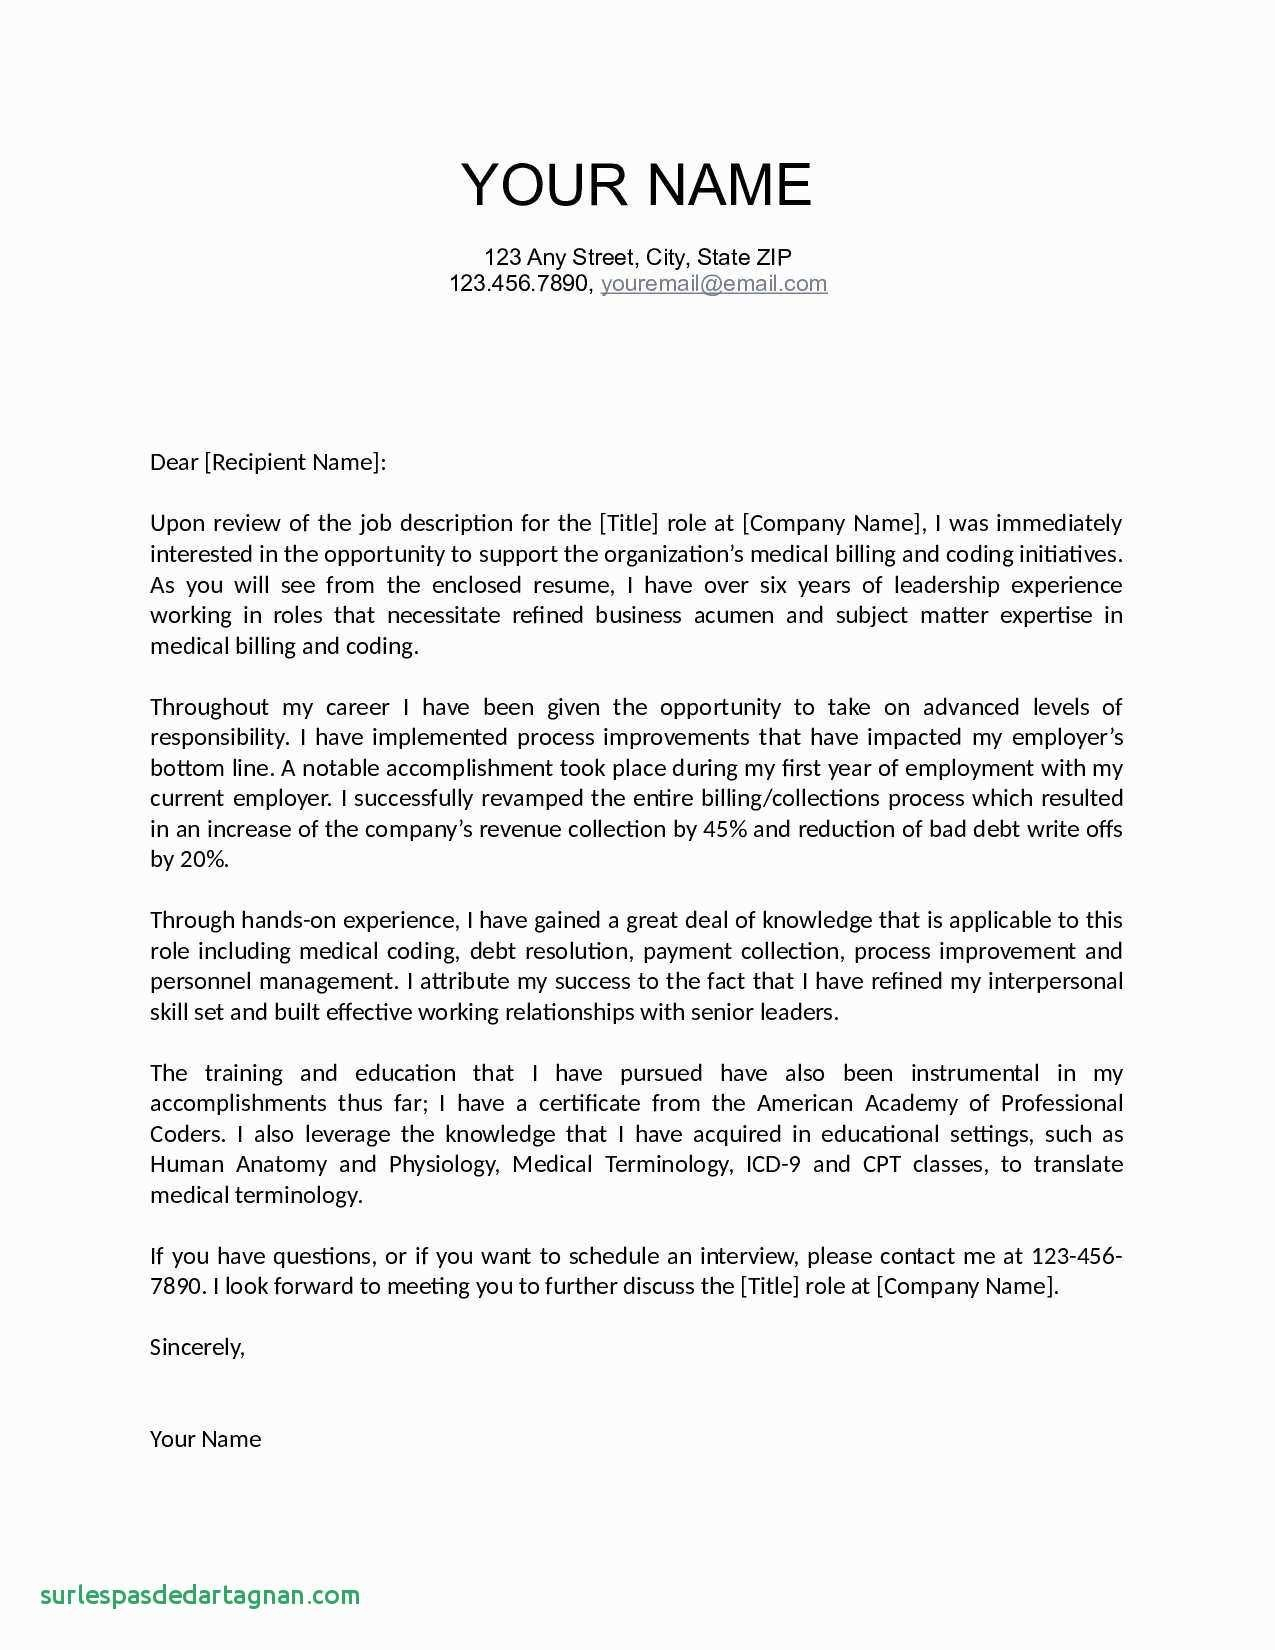 Leadership Letter Of Recommendation Template - Letters Re Mendation for Jobs Best Fresh Job Fer Letter